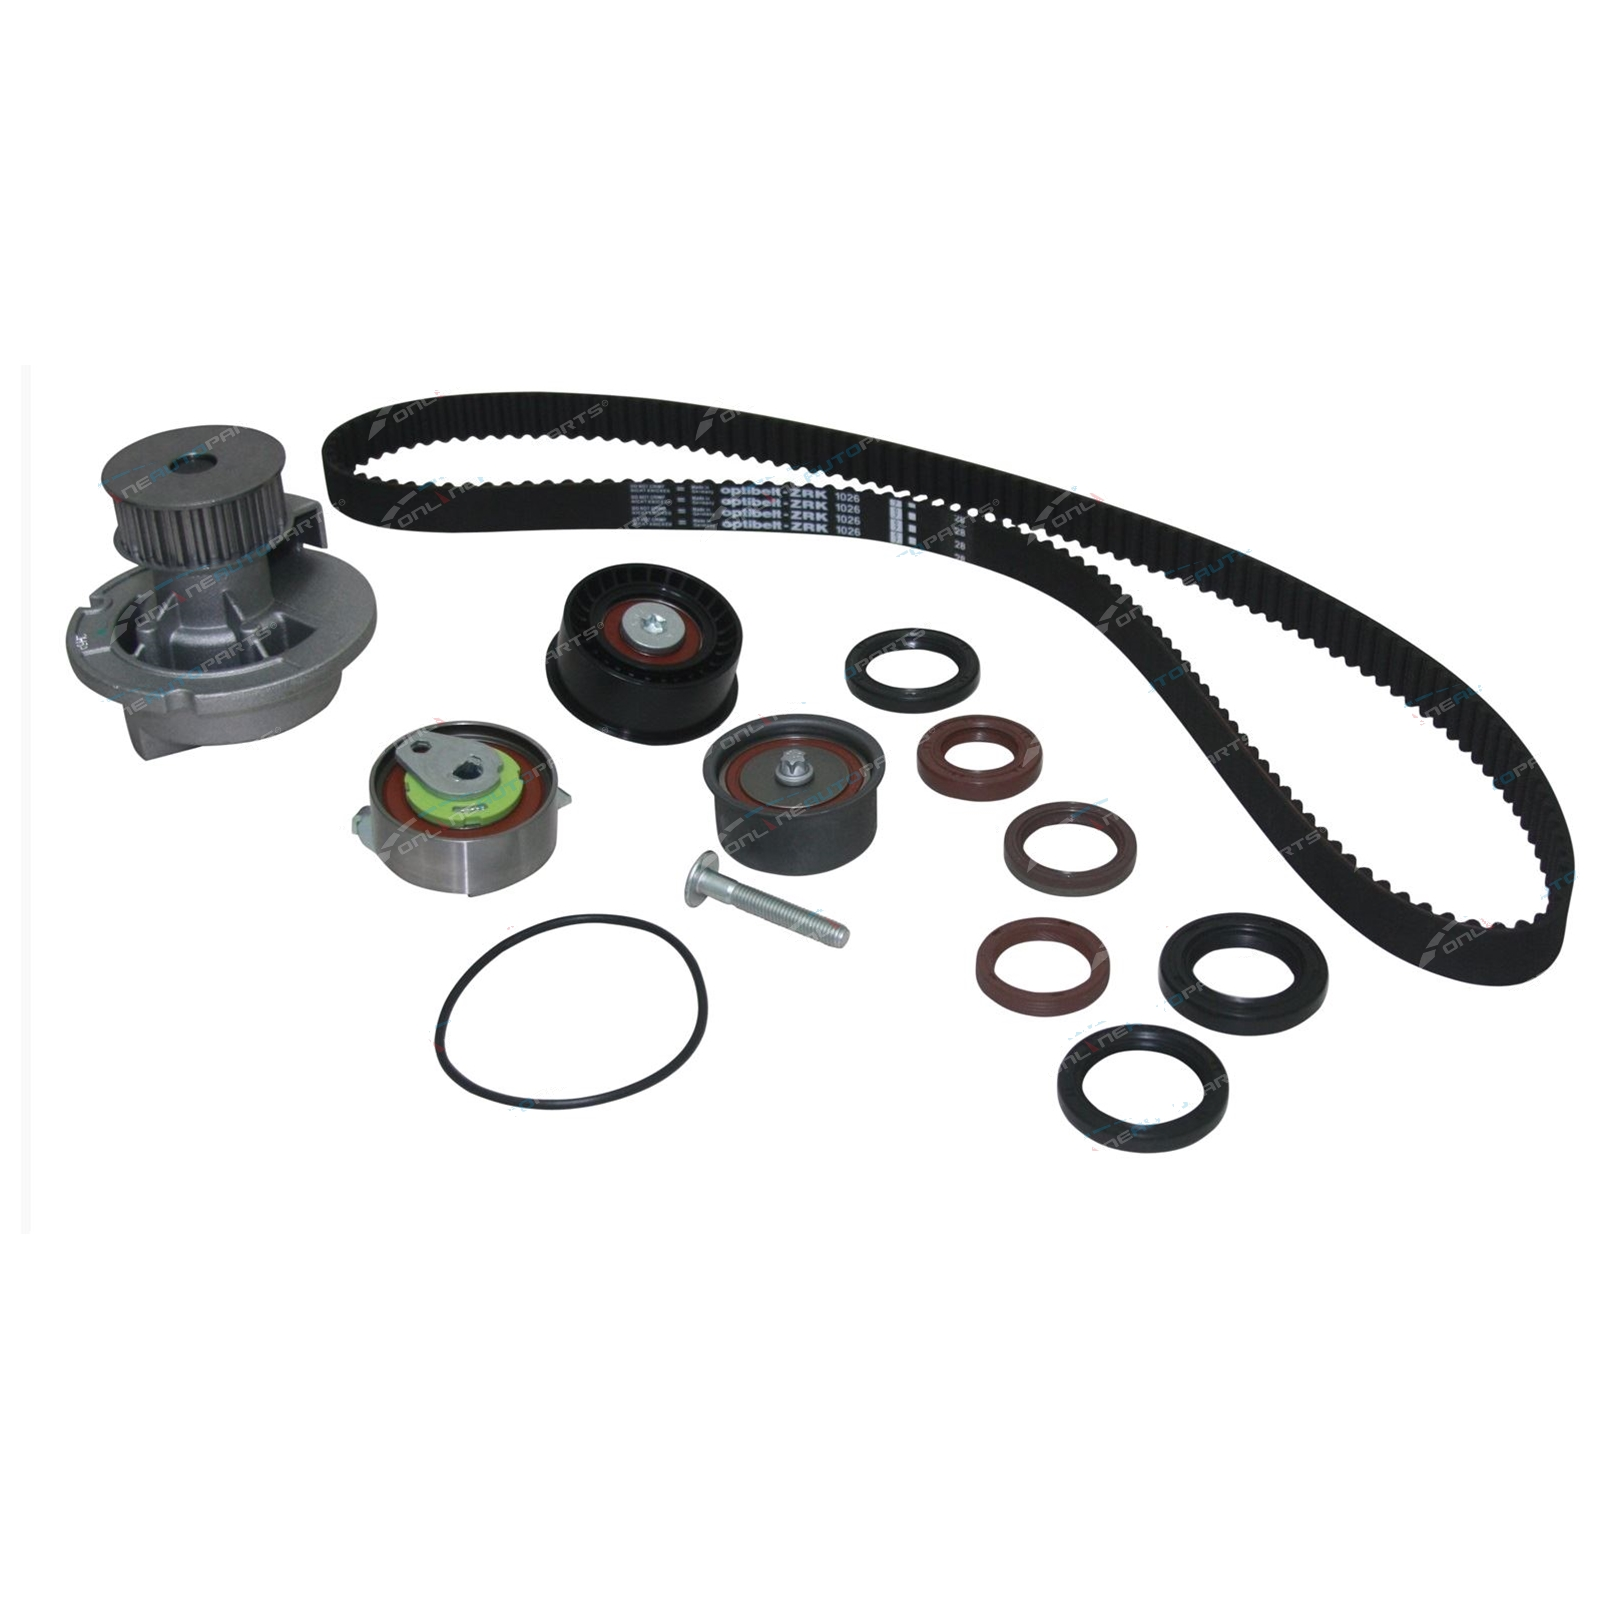 Timing Kit Holden Viva JF 2005-09 4cyl F18D3 1.8L 1796cc 16v DOHC Belt, Seals, Tensioner,Water Pump